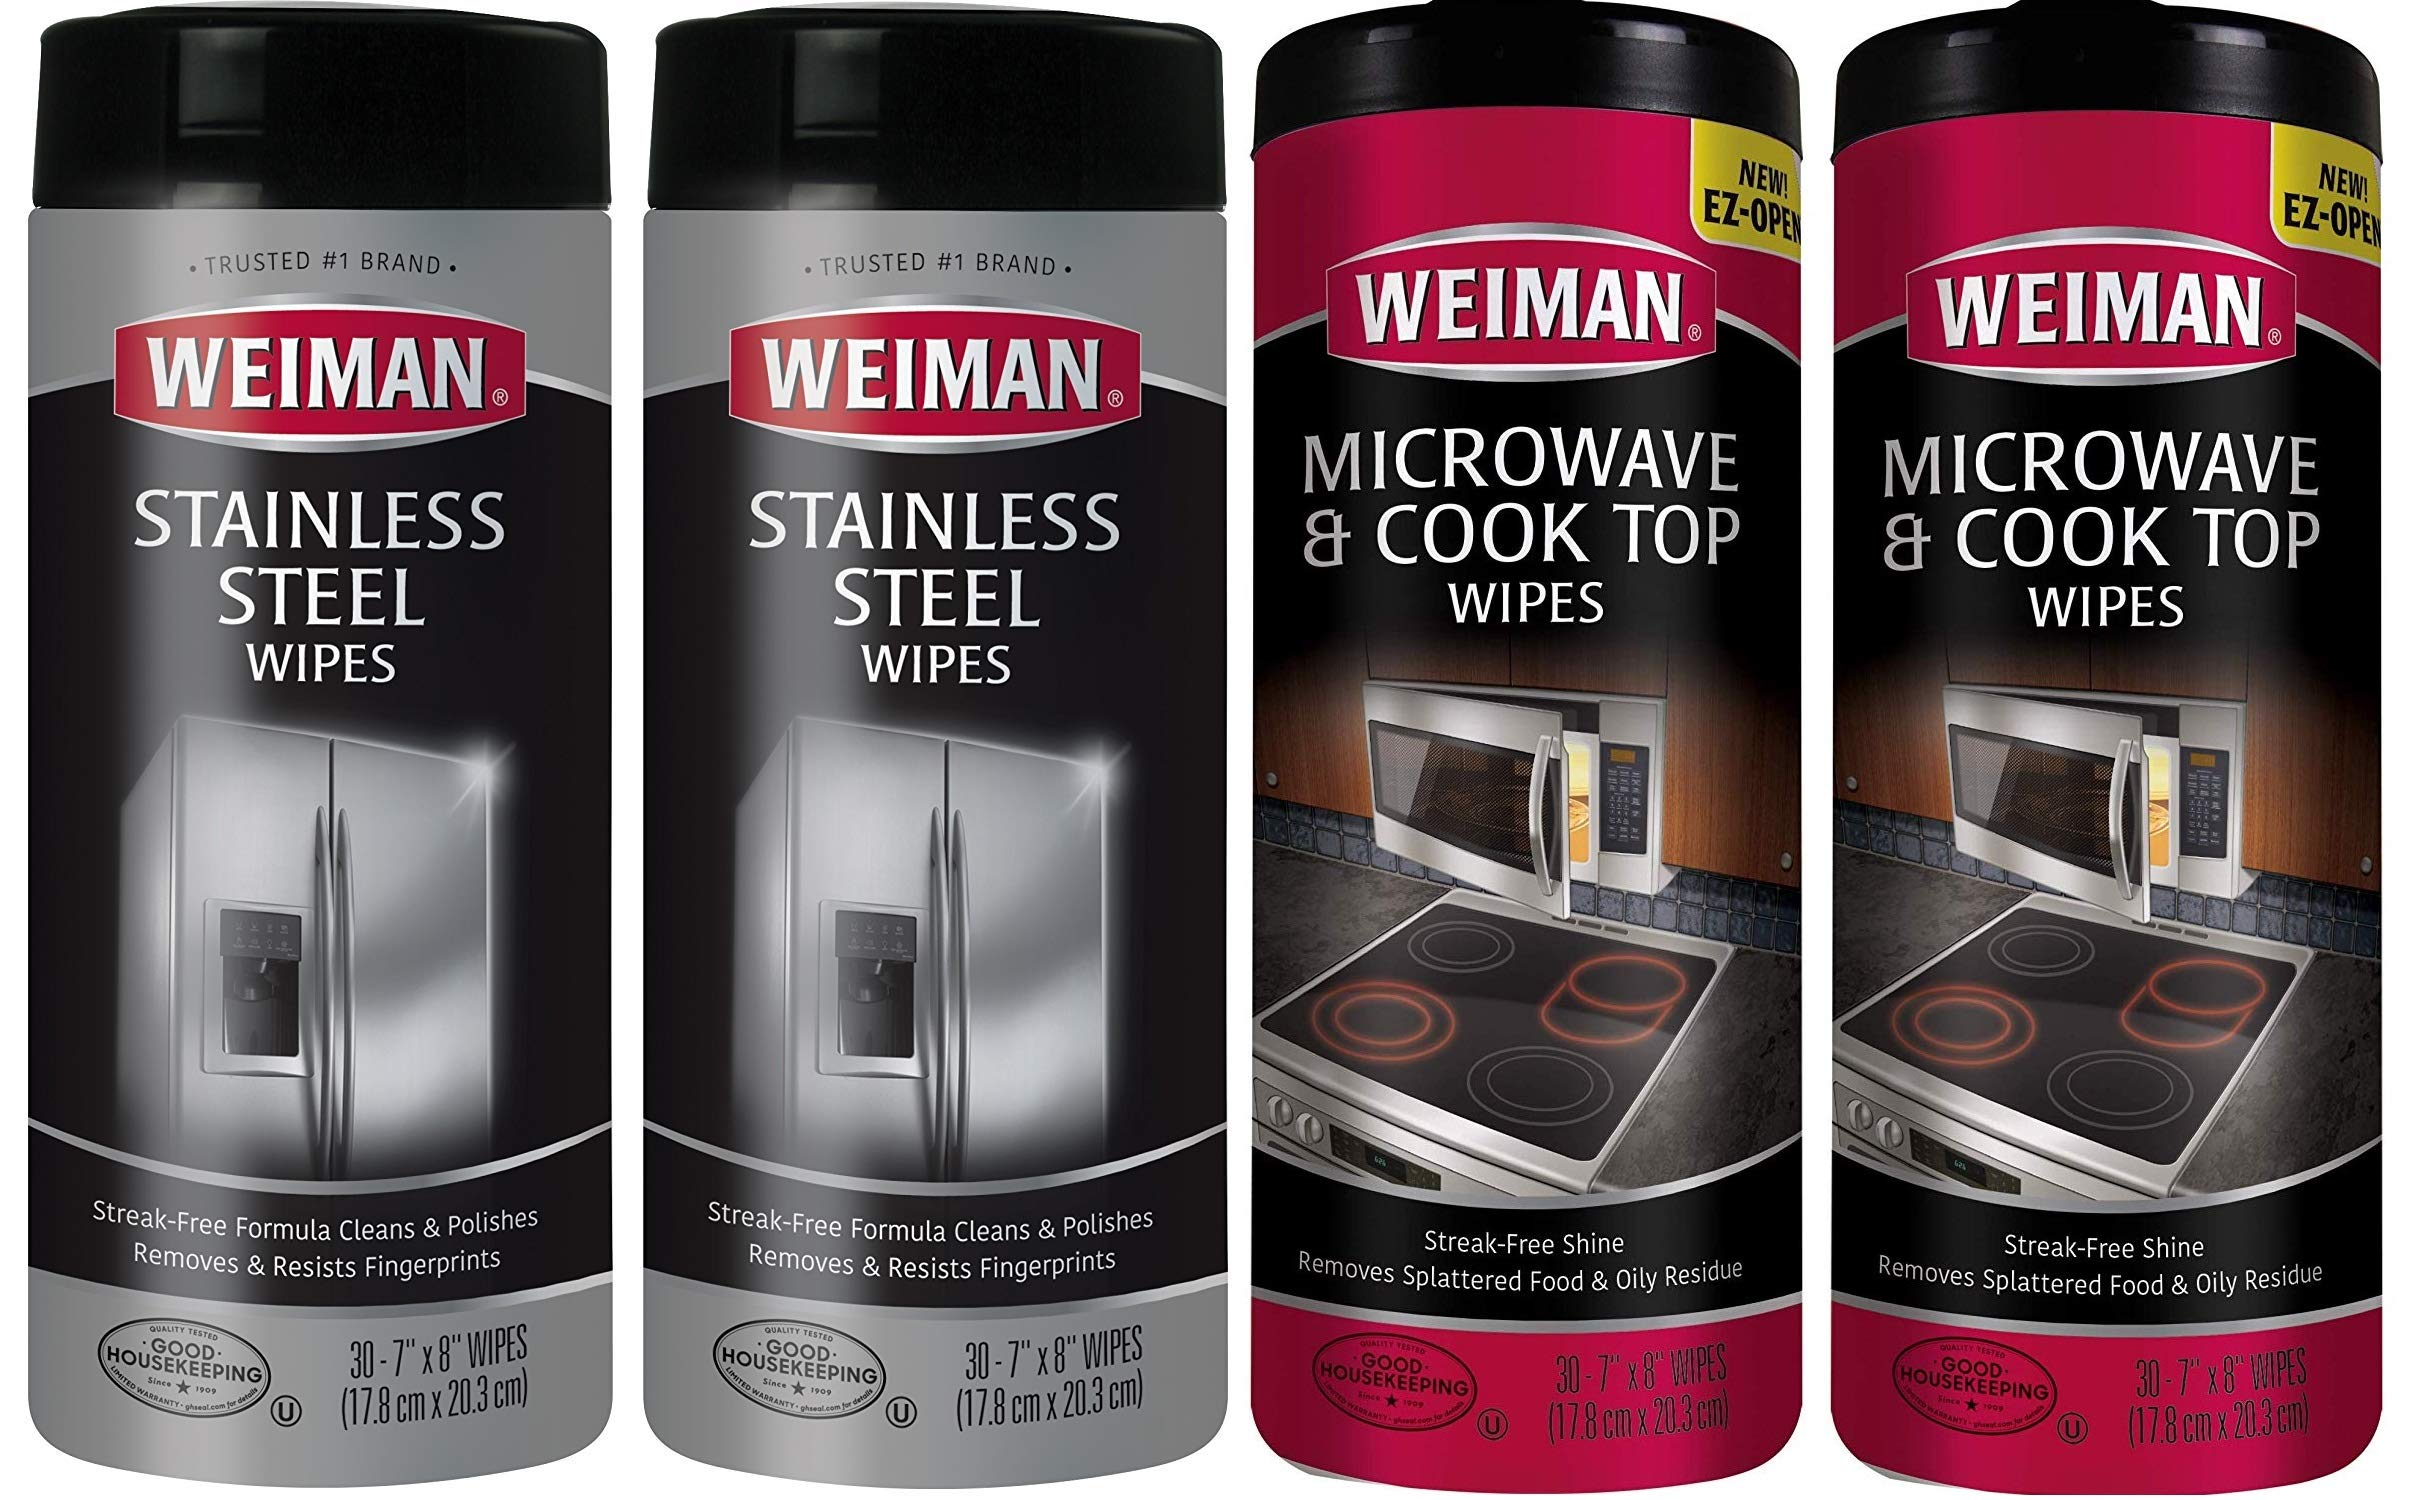 Weiman Microwave & Cook Top Wipes and Stainless Steel Wipes - 4 pack of 30 wipes each by Weiman Wipes